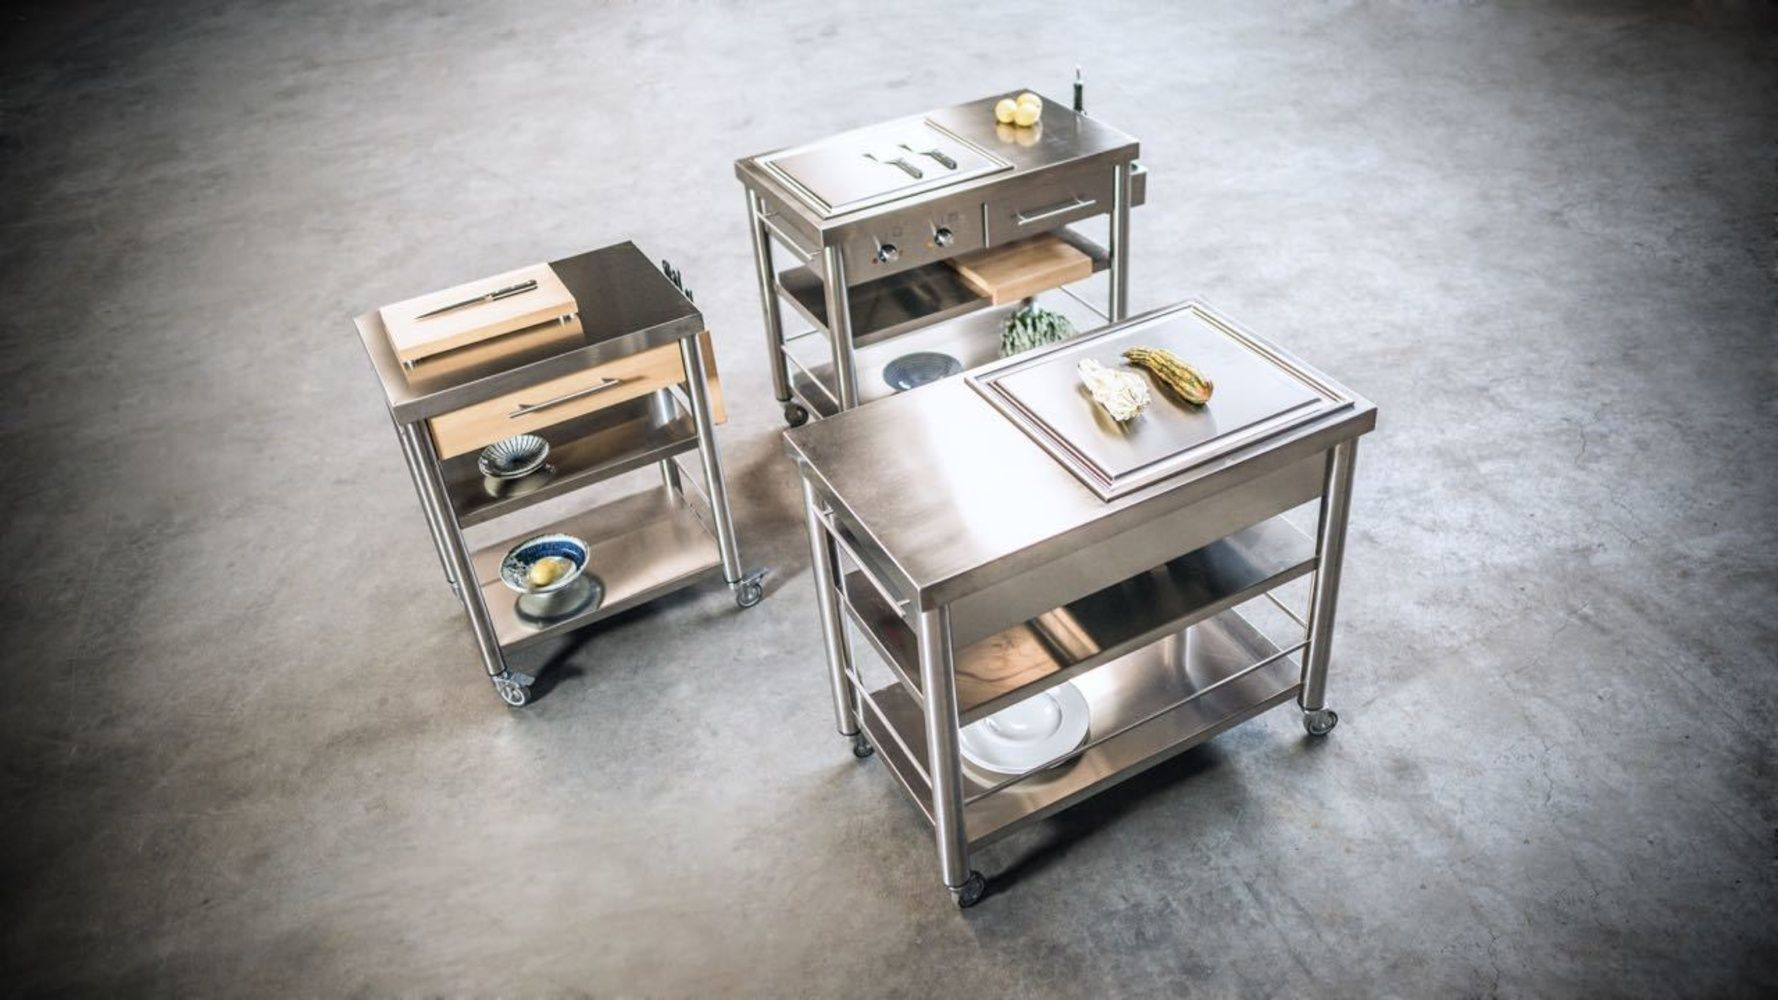 Auxiliu Maison Objet And More The New M O Digital Platform Outdoor Kitchen Outdoor Cooking Station Teppanyaki